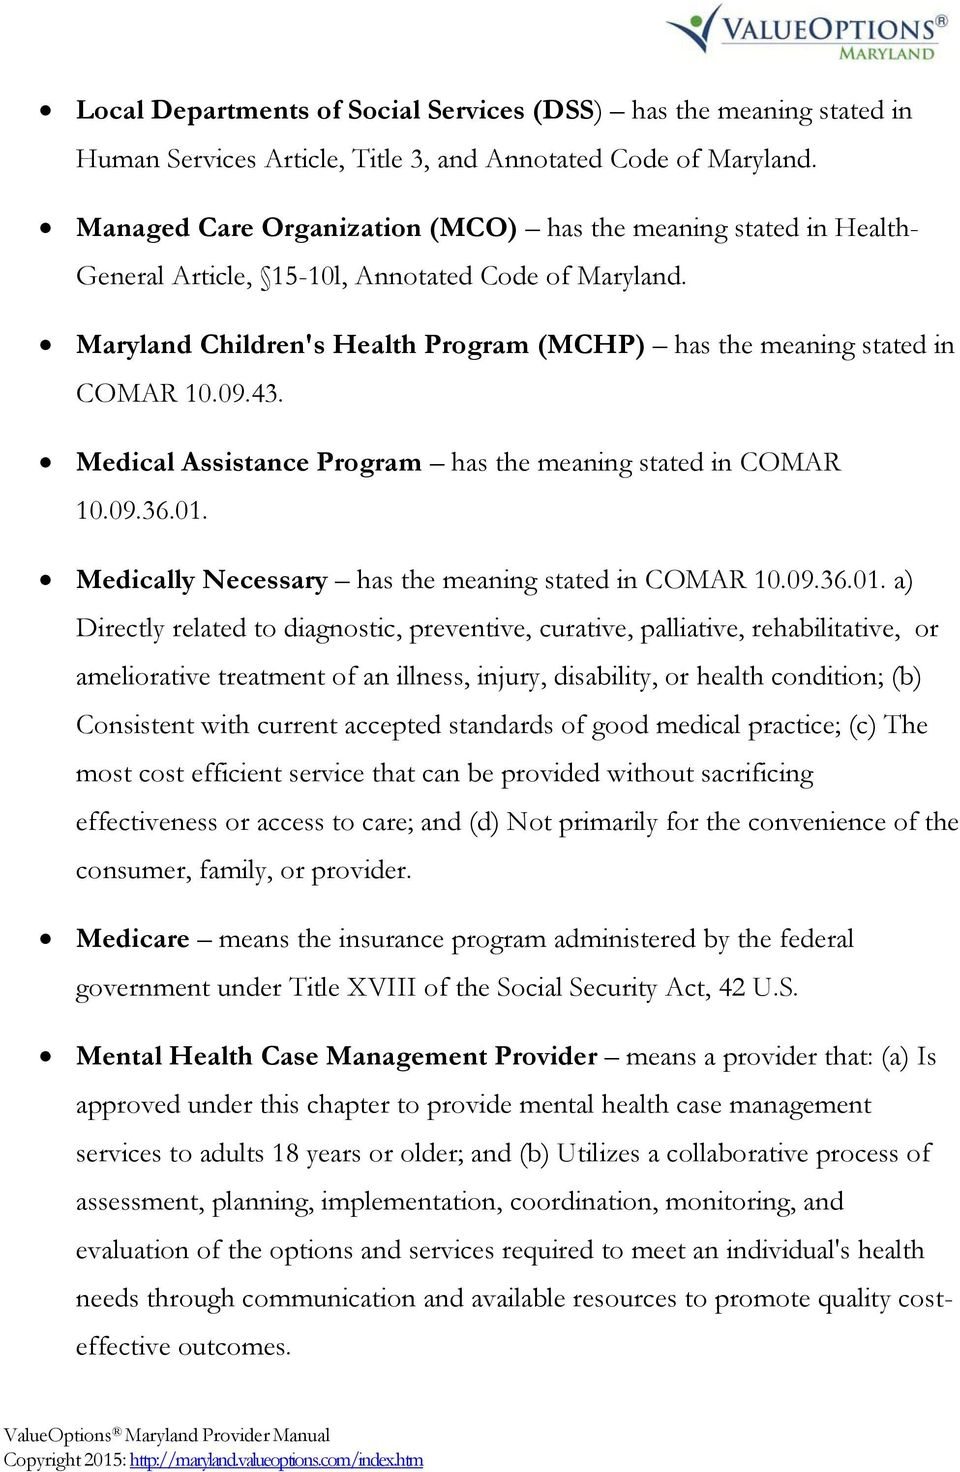 43. Medical Assistance Program has the meaning stated in COMAR 10.09.36.01.